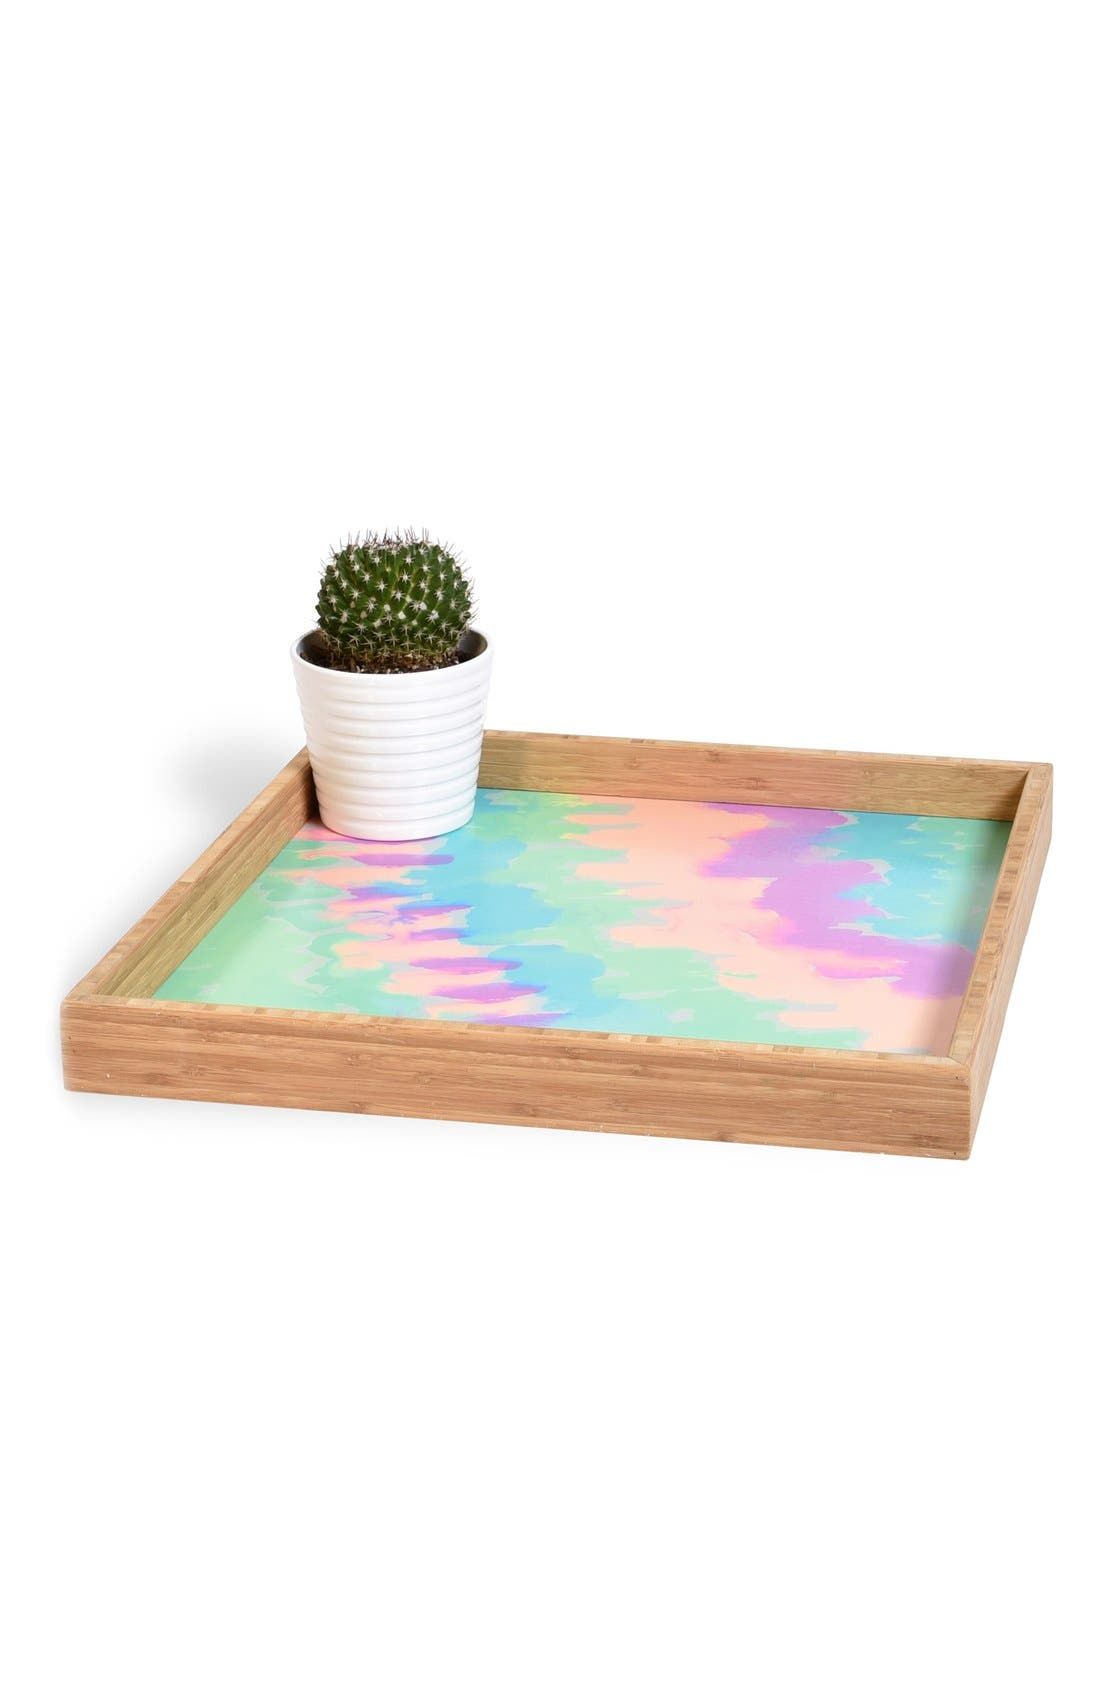 'Some Kind of Wonderful' Decorative Serving Tray,                             Alternate thumbnail 2, color,                             300